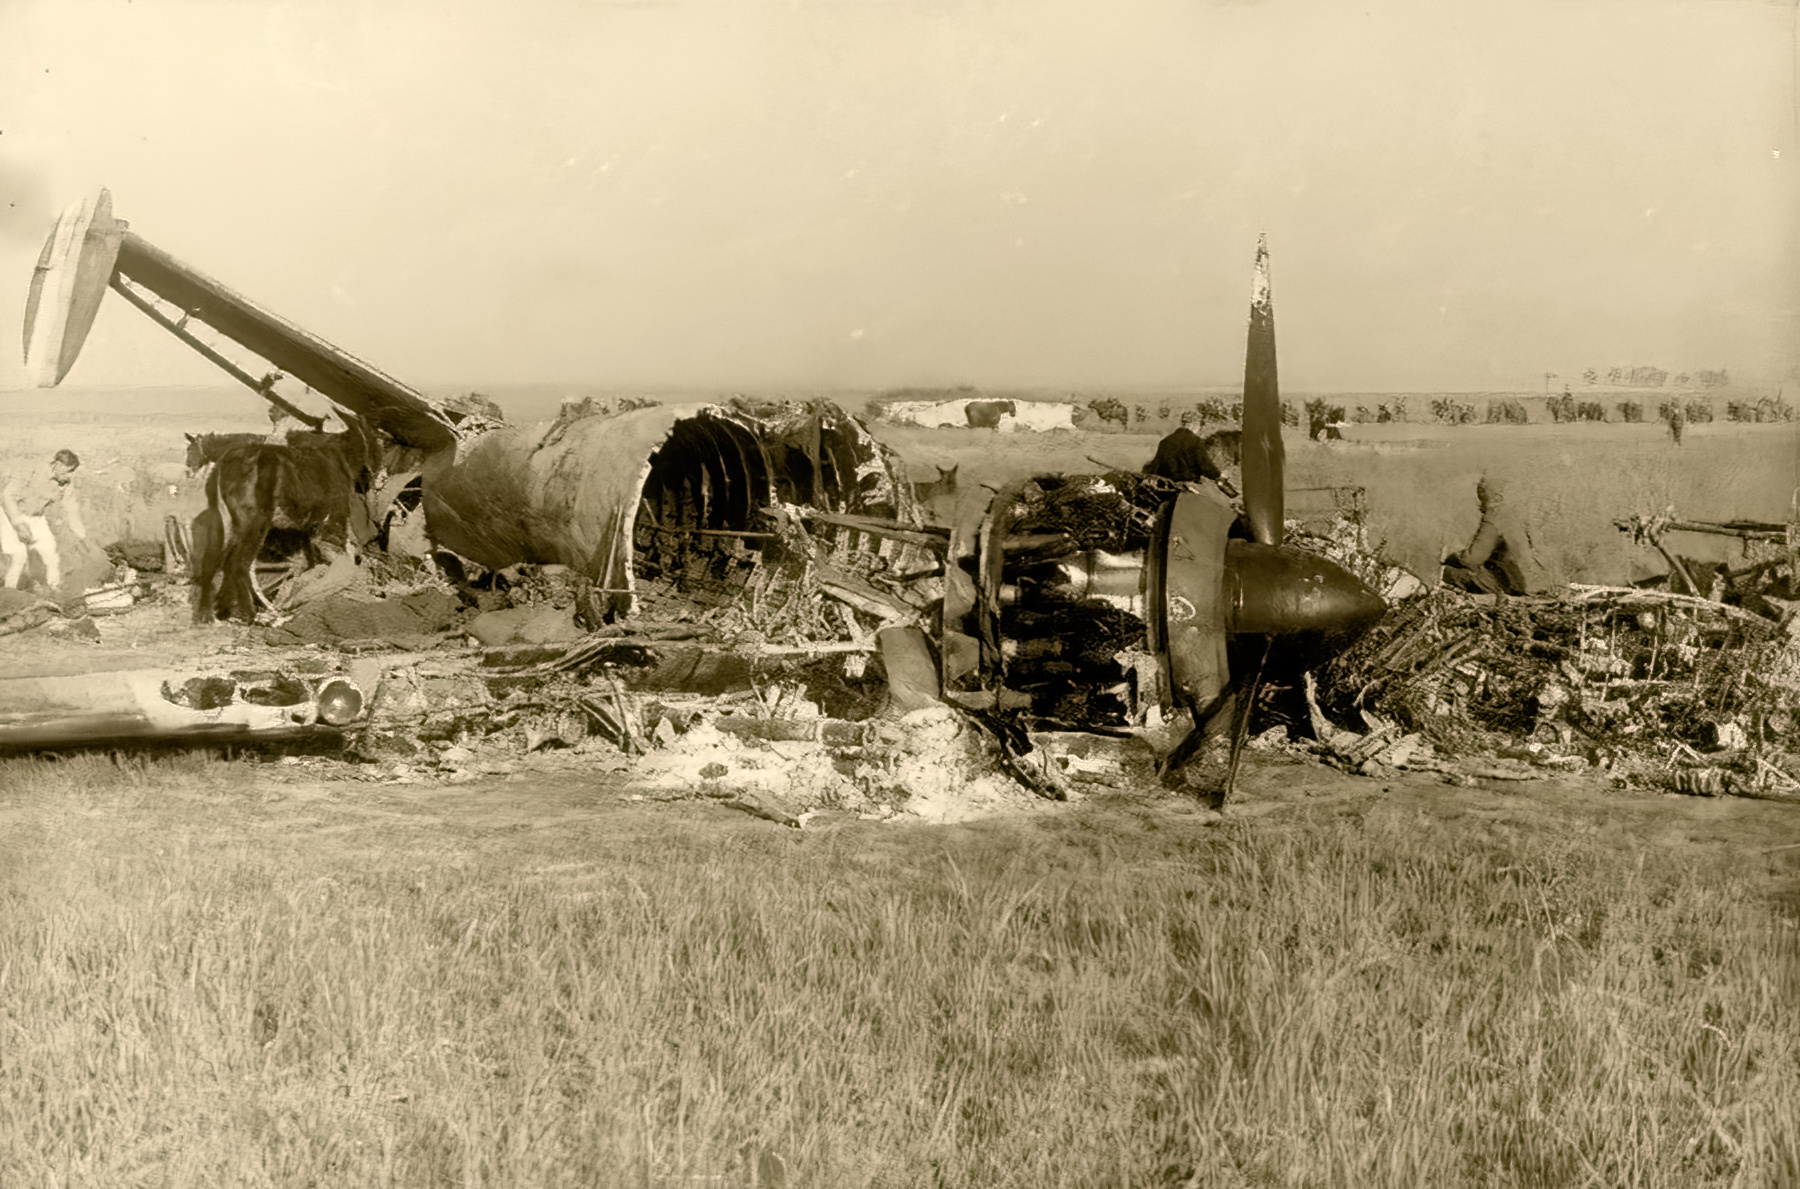 French Airforce Liore et Olivier LeO 451 destroyed whilst on the ground battle of France May Jun 1940 ebay 02